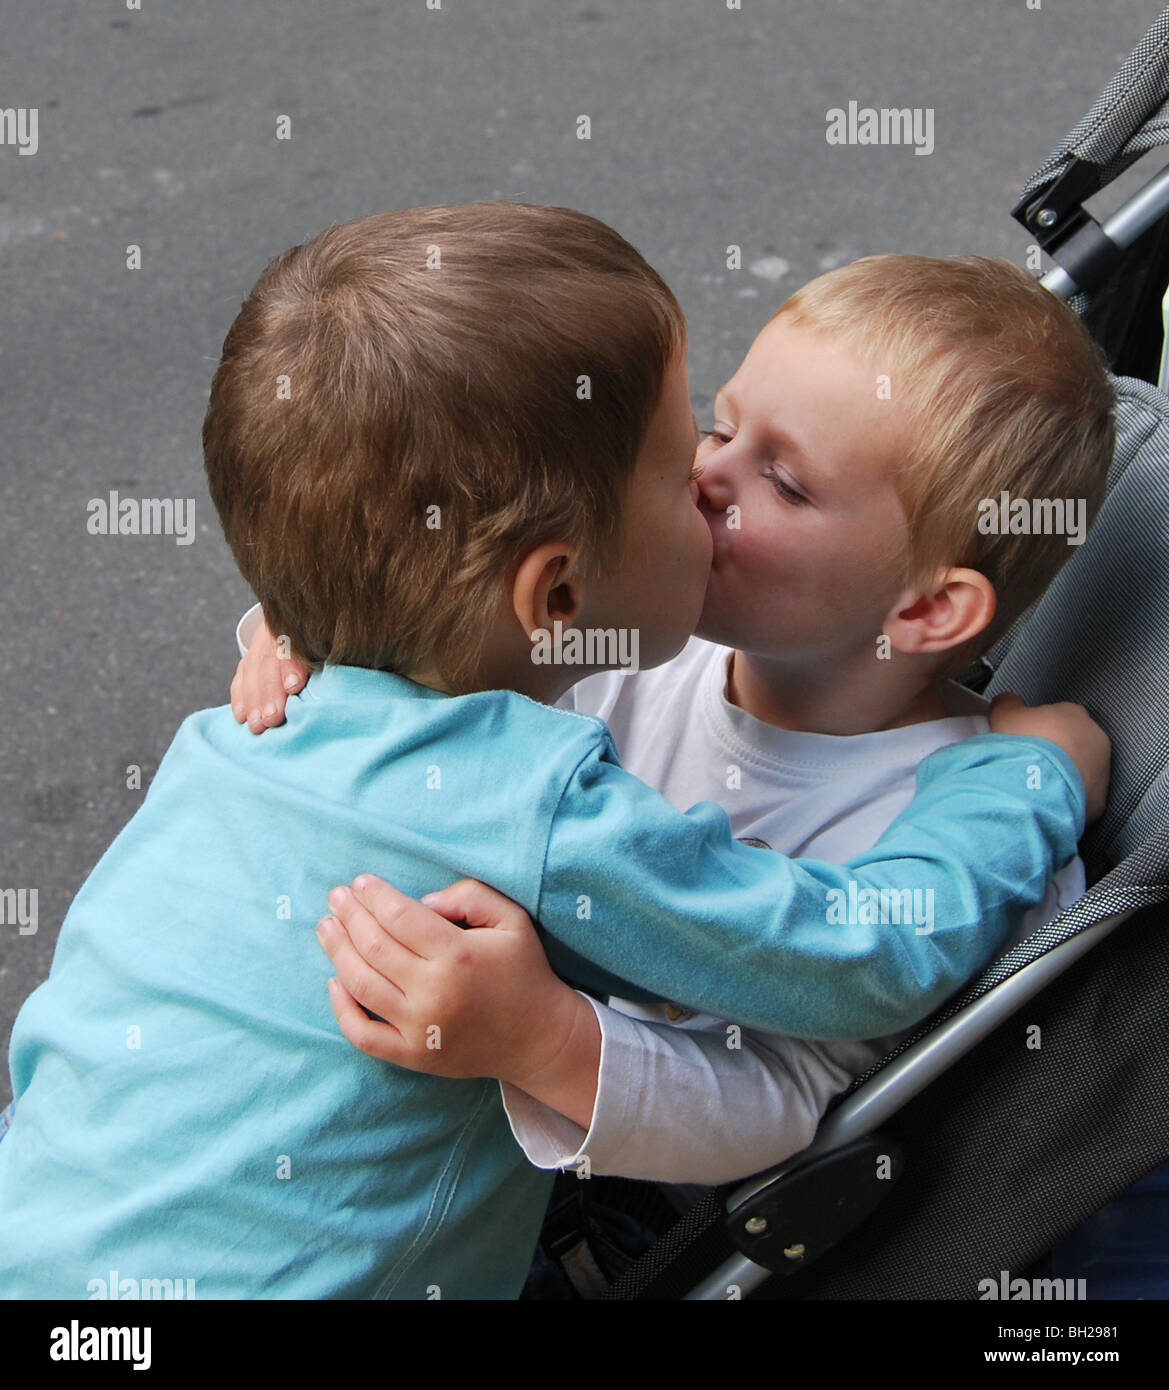 Brotherly love, 2 brothers sharing a kiss - Stock Image